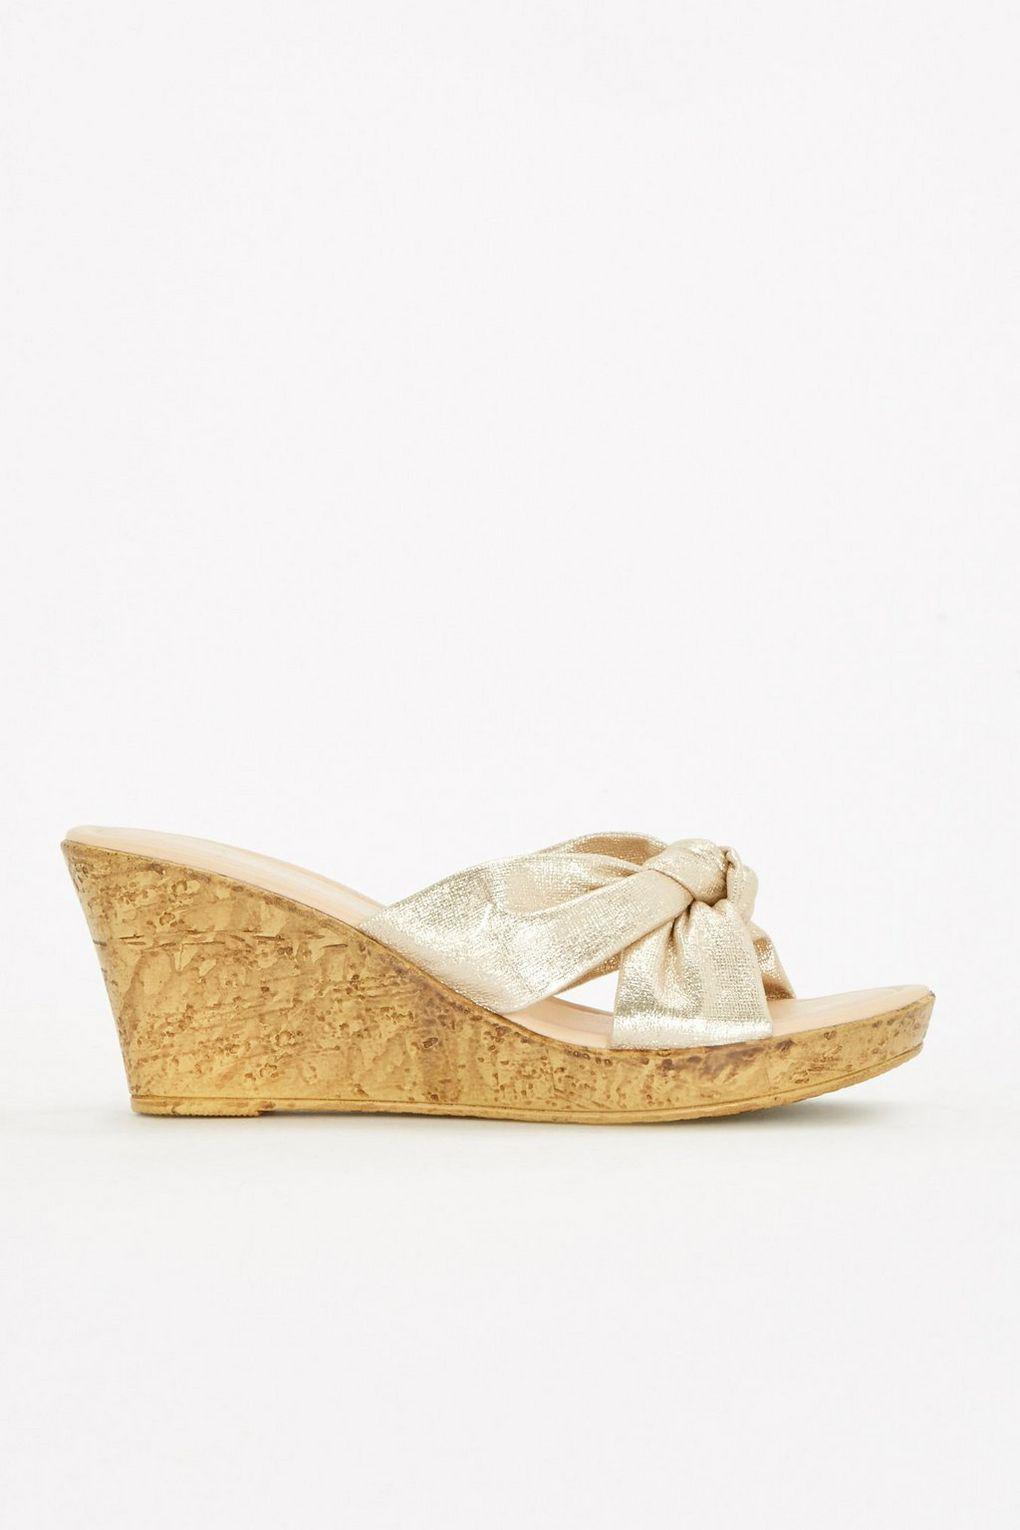 buy cheap the cheapest Gold knot detail unit wedge discount official site outlet good selling best prices sale online pZWSTNH